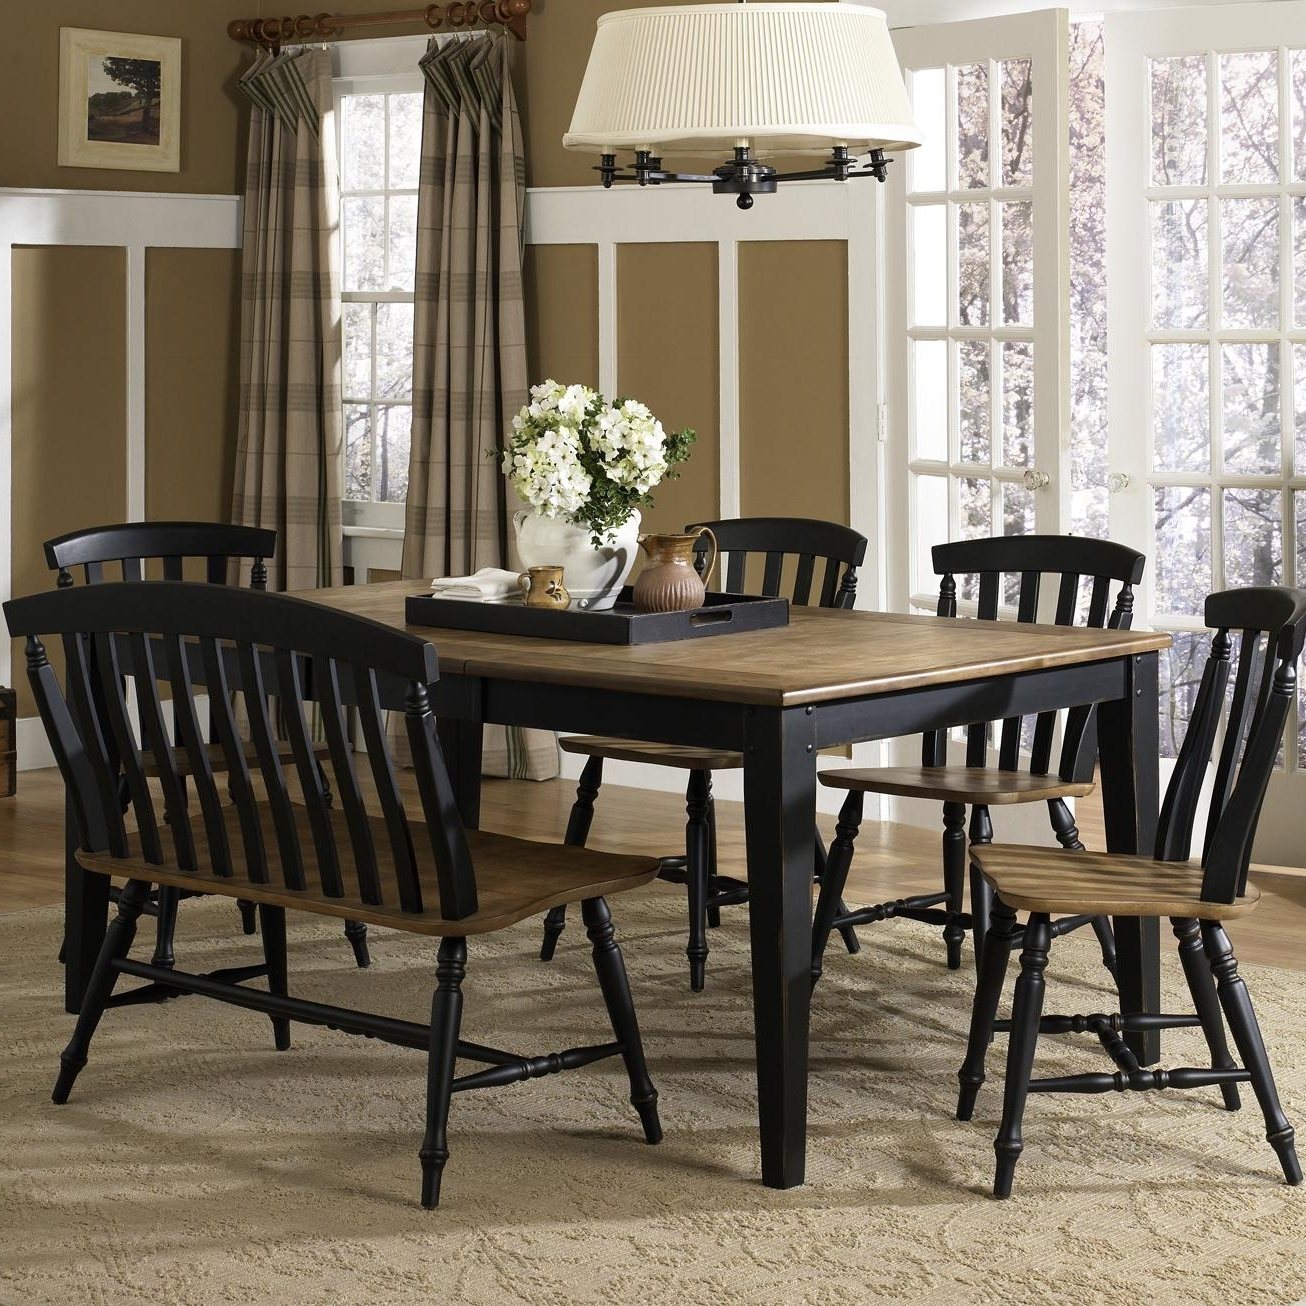 6 Seat Dining Table Sets inside 2017 Liberty Furniture Al Fresco Ii Six Piece Dining Table Set With